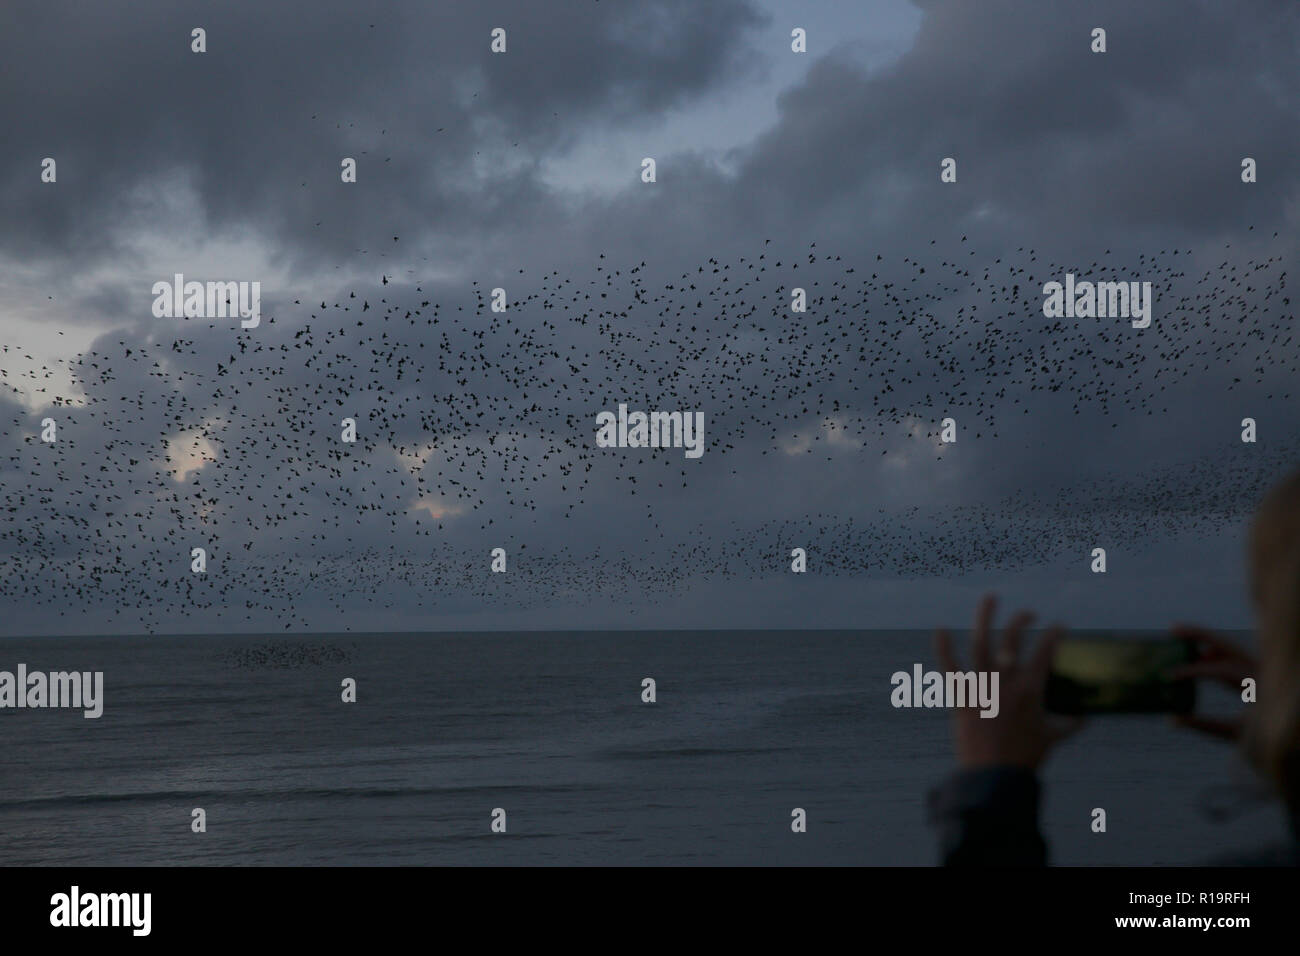 Aberystwyth,UK,10th November 2018,Starling Murmuration in Aberystwyth, Wales, as the sunsets on a windy Autumn afternoon Hundreds of starlings form amazing patterns and shapes as they group together before going under the pier to roost for the night.Credit: Keith Larby/Alamy Live News - Stock Image